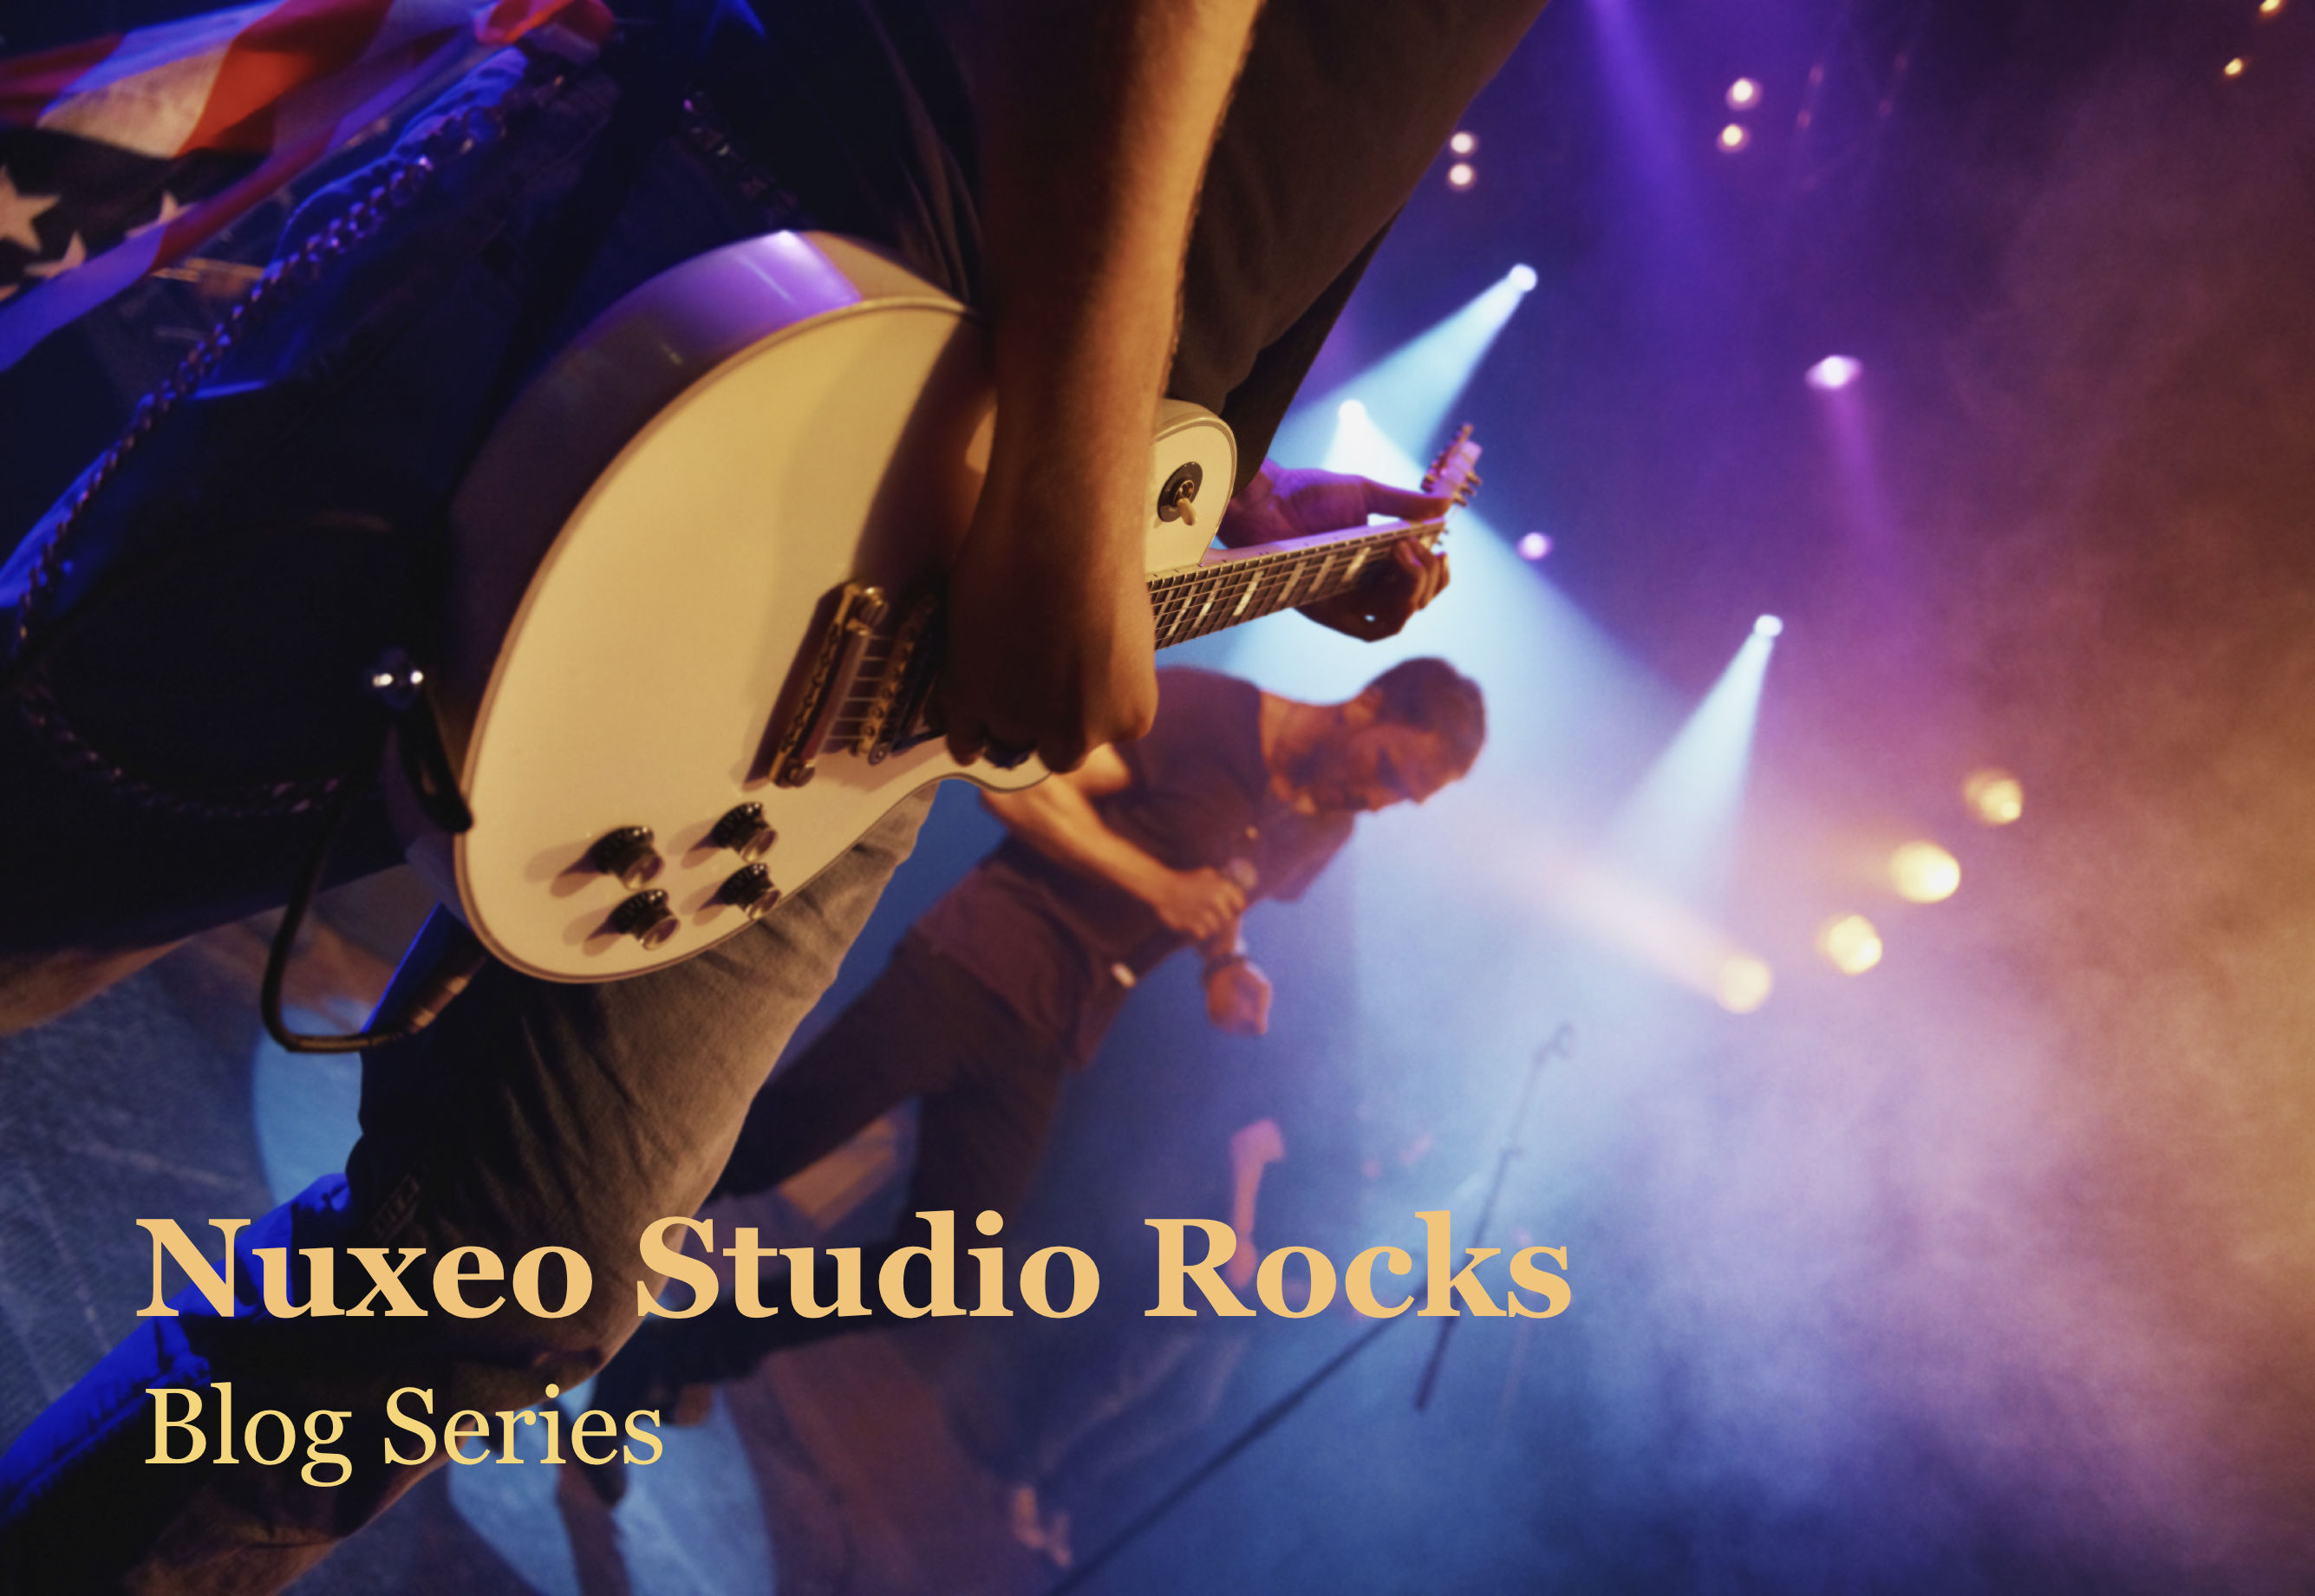 Nuxeo Studio Rocks! Find, Order and Synchronize a Set of Images